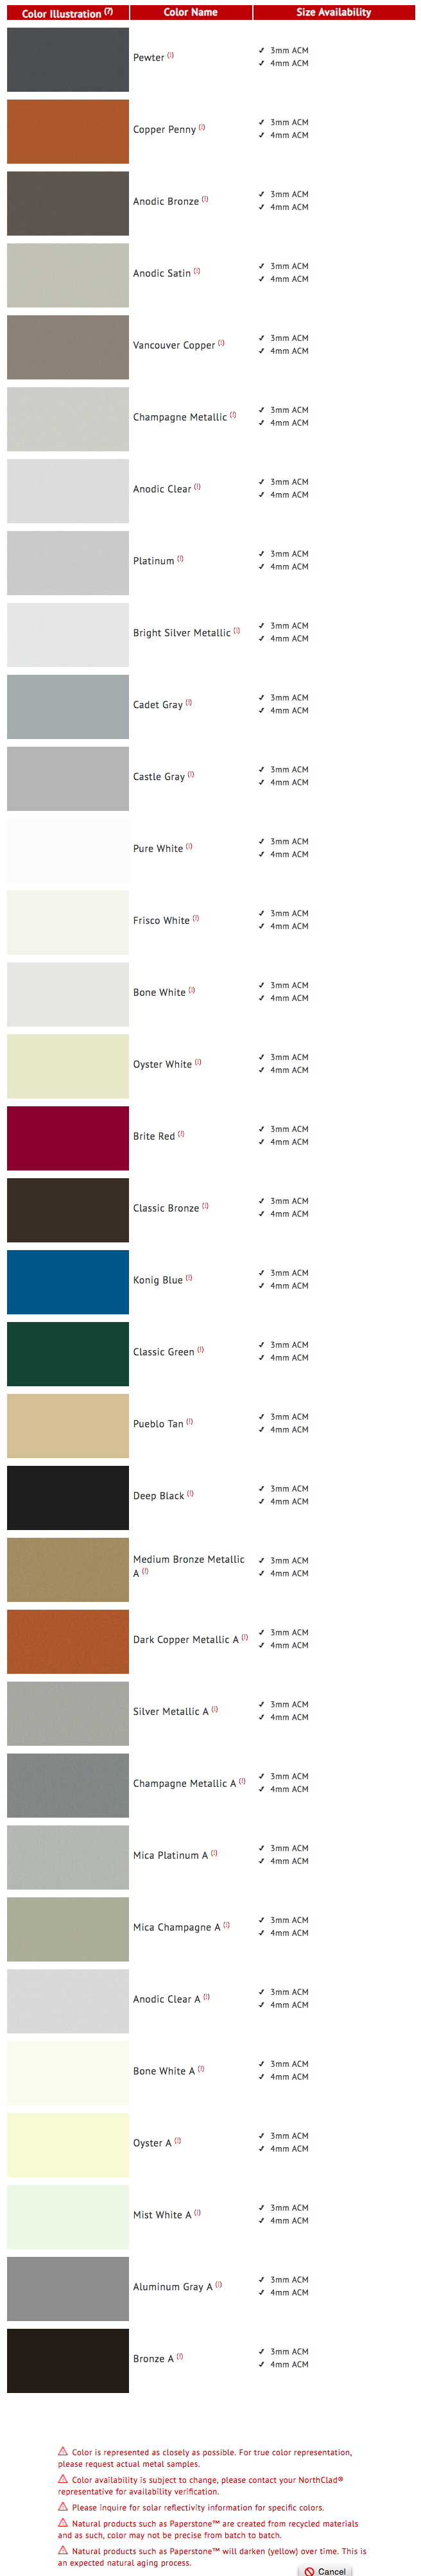 Fastener Series Color Options - NorthClad